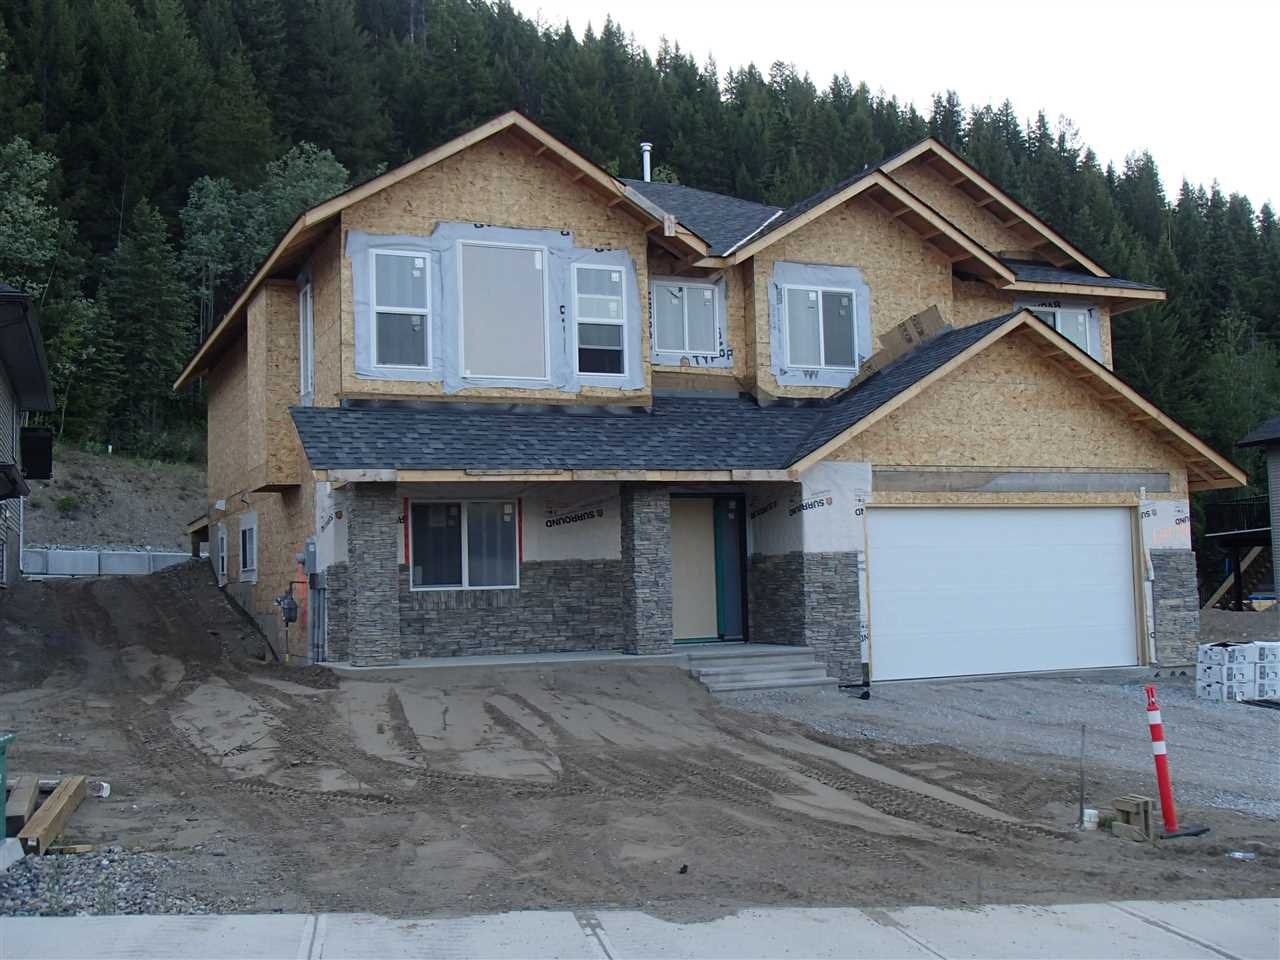 """Main Photo: 4626 AVTAR Place in Prince George: Nechako Bench House for sale in """"NORTH MEADOWS"""" (PG City North (Zone 73))  : MLS®# R2088353"""